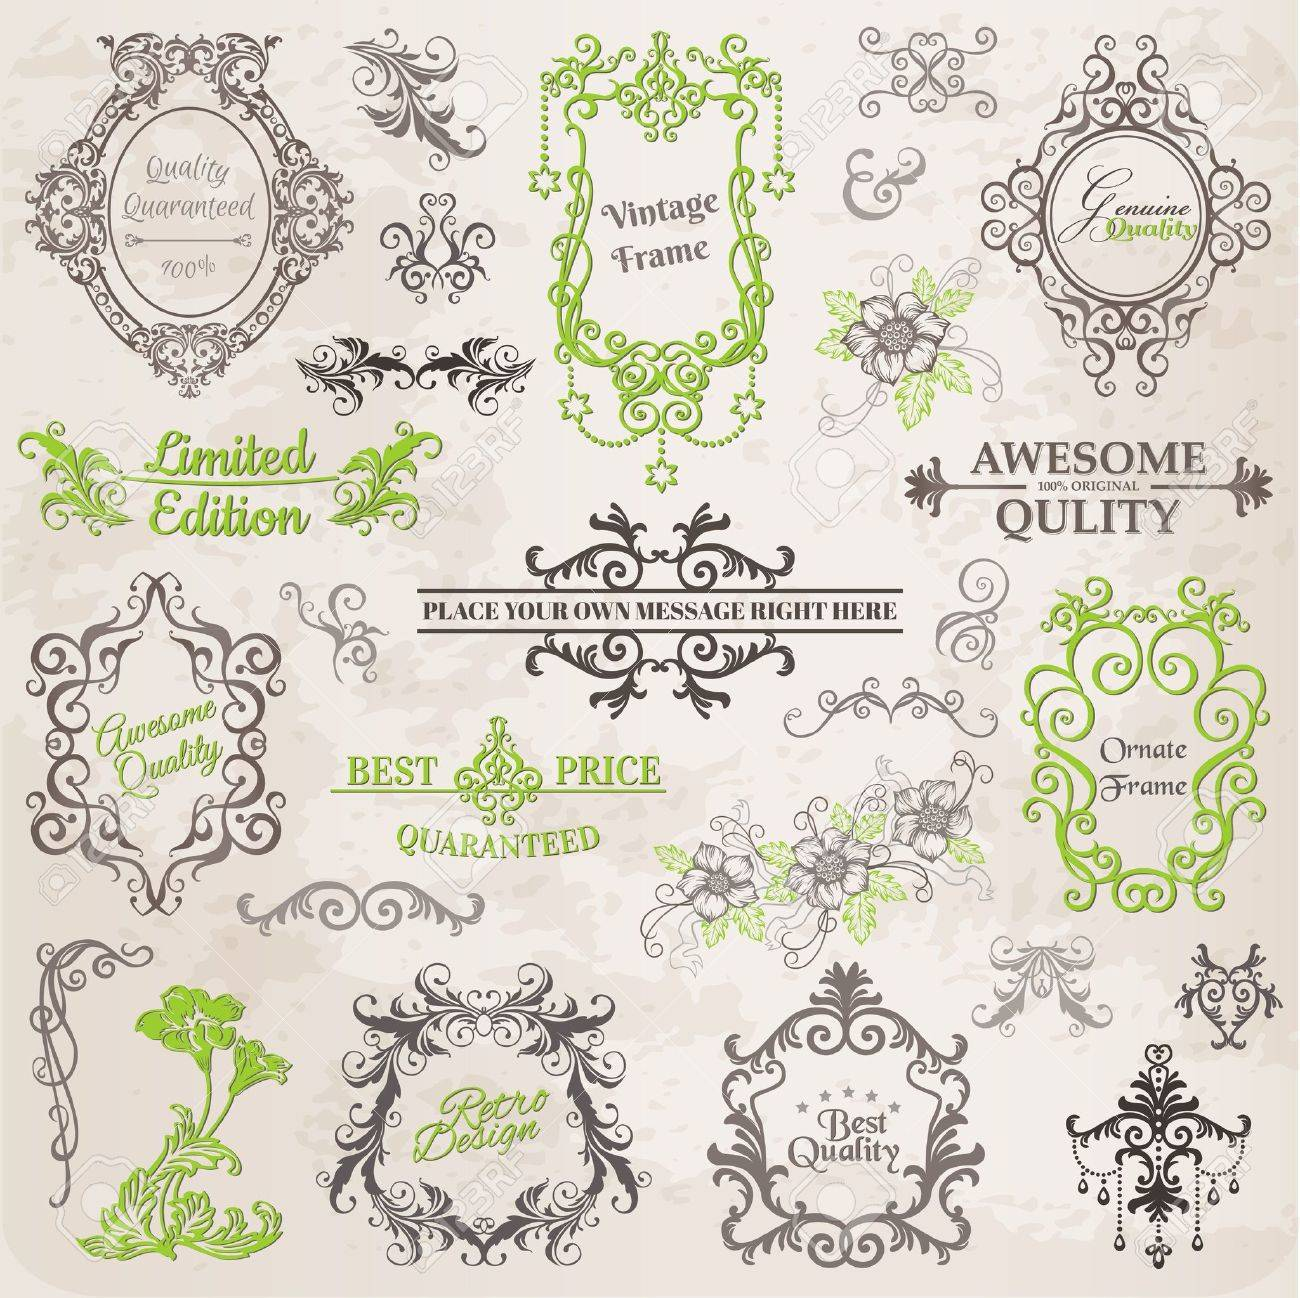 Calligraphic Design Elements and Page Decoration, Vintage Frame collection with Flowers Stock Vector - 14269225